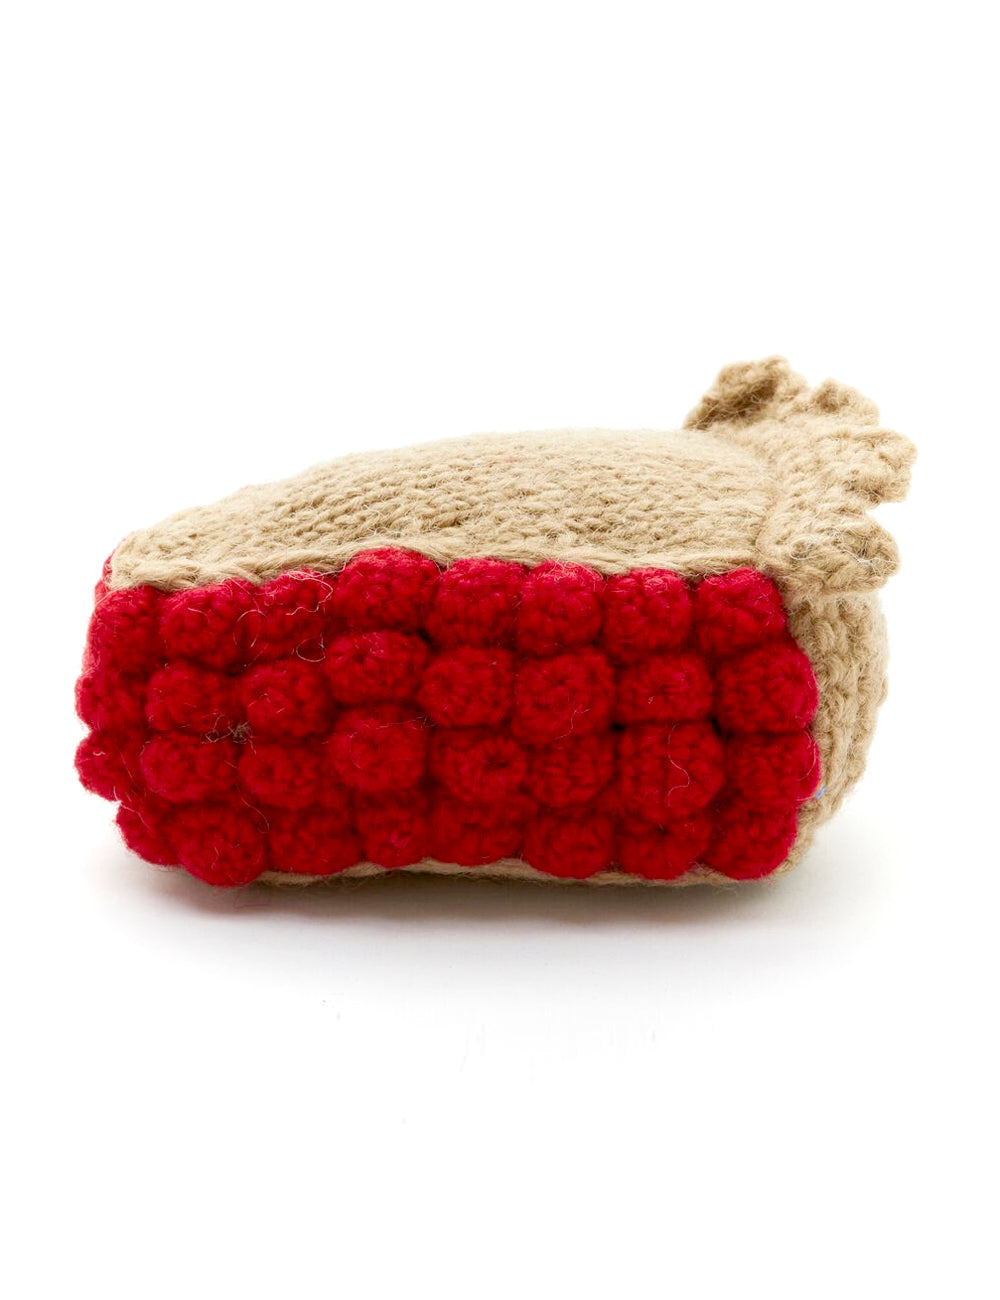 Cherry Pie Dog Toy | Multi